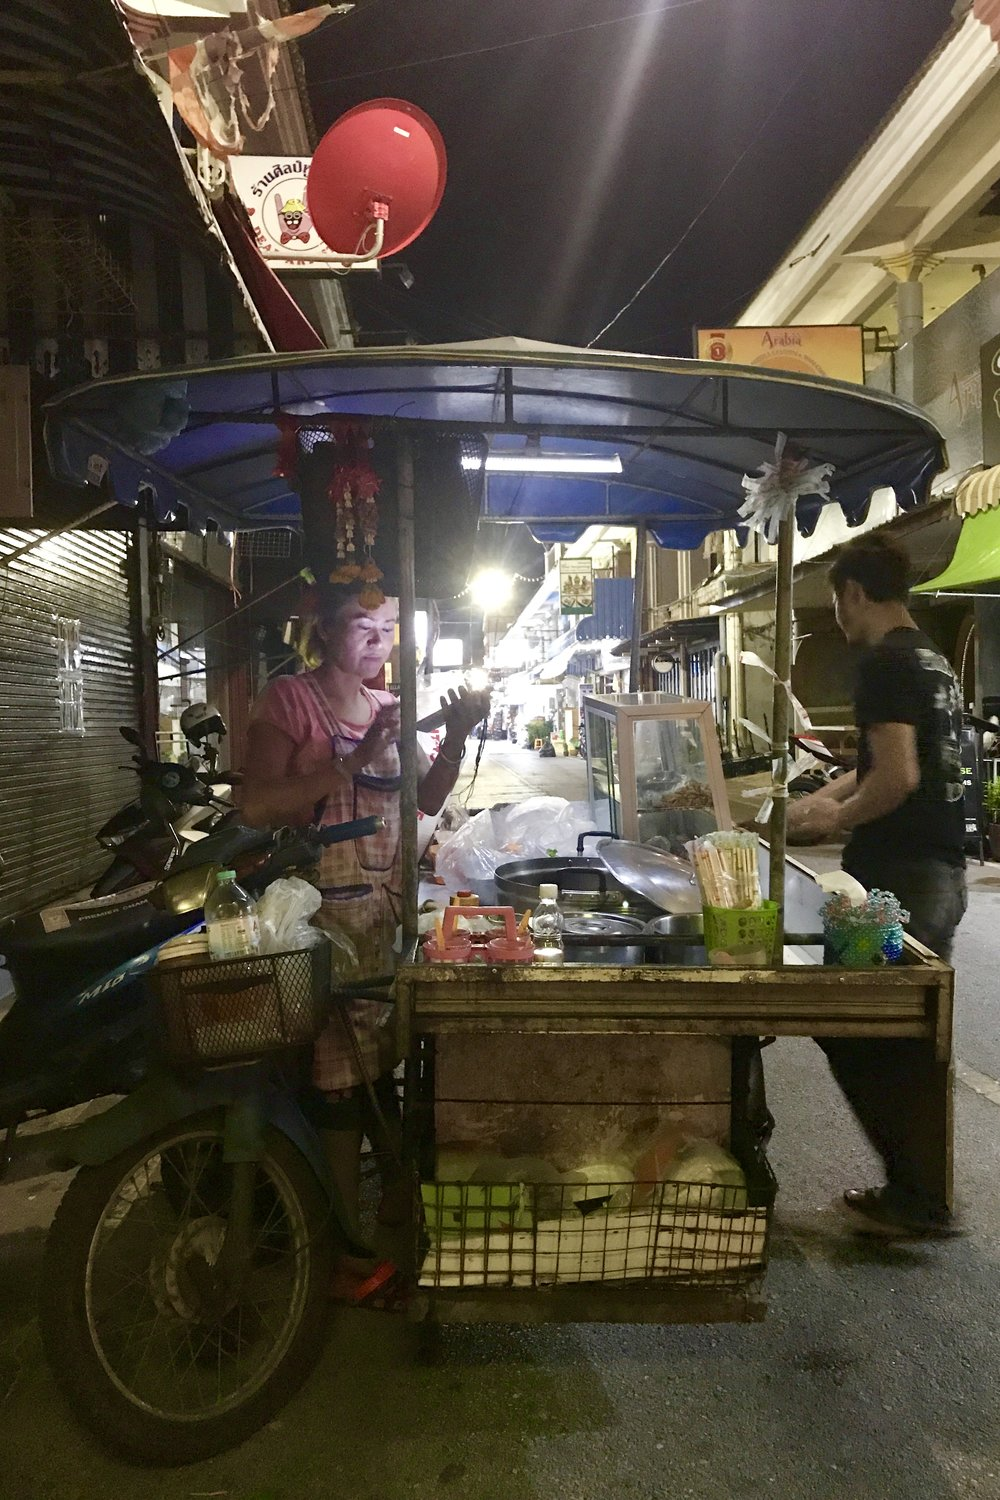 Street food scooter with full kitchen